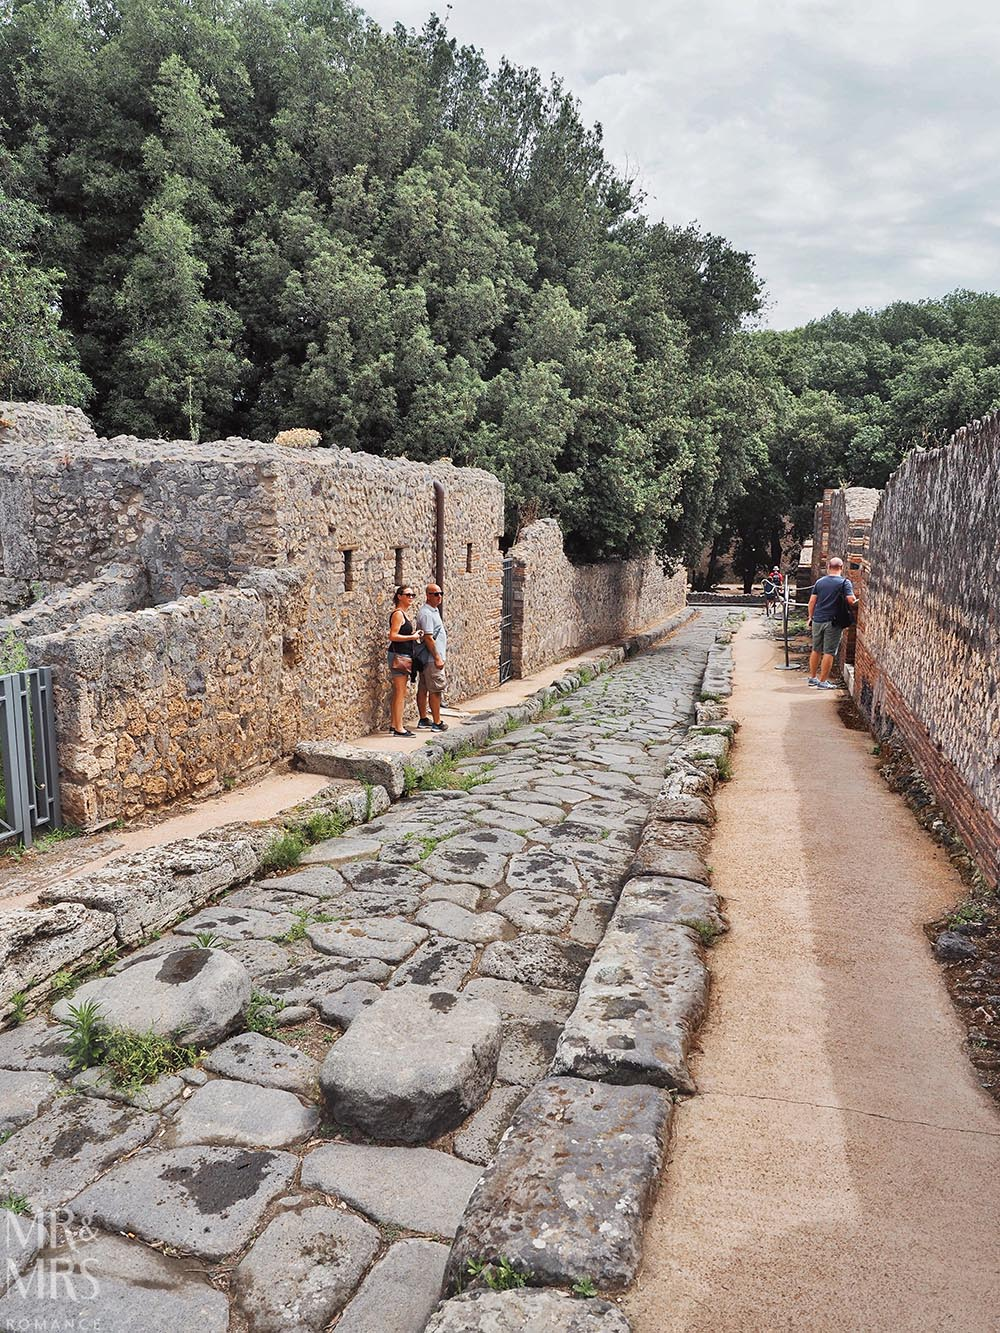 Pompeii DIY tour - how to get the most out of Pompeii - road